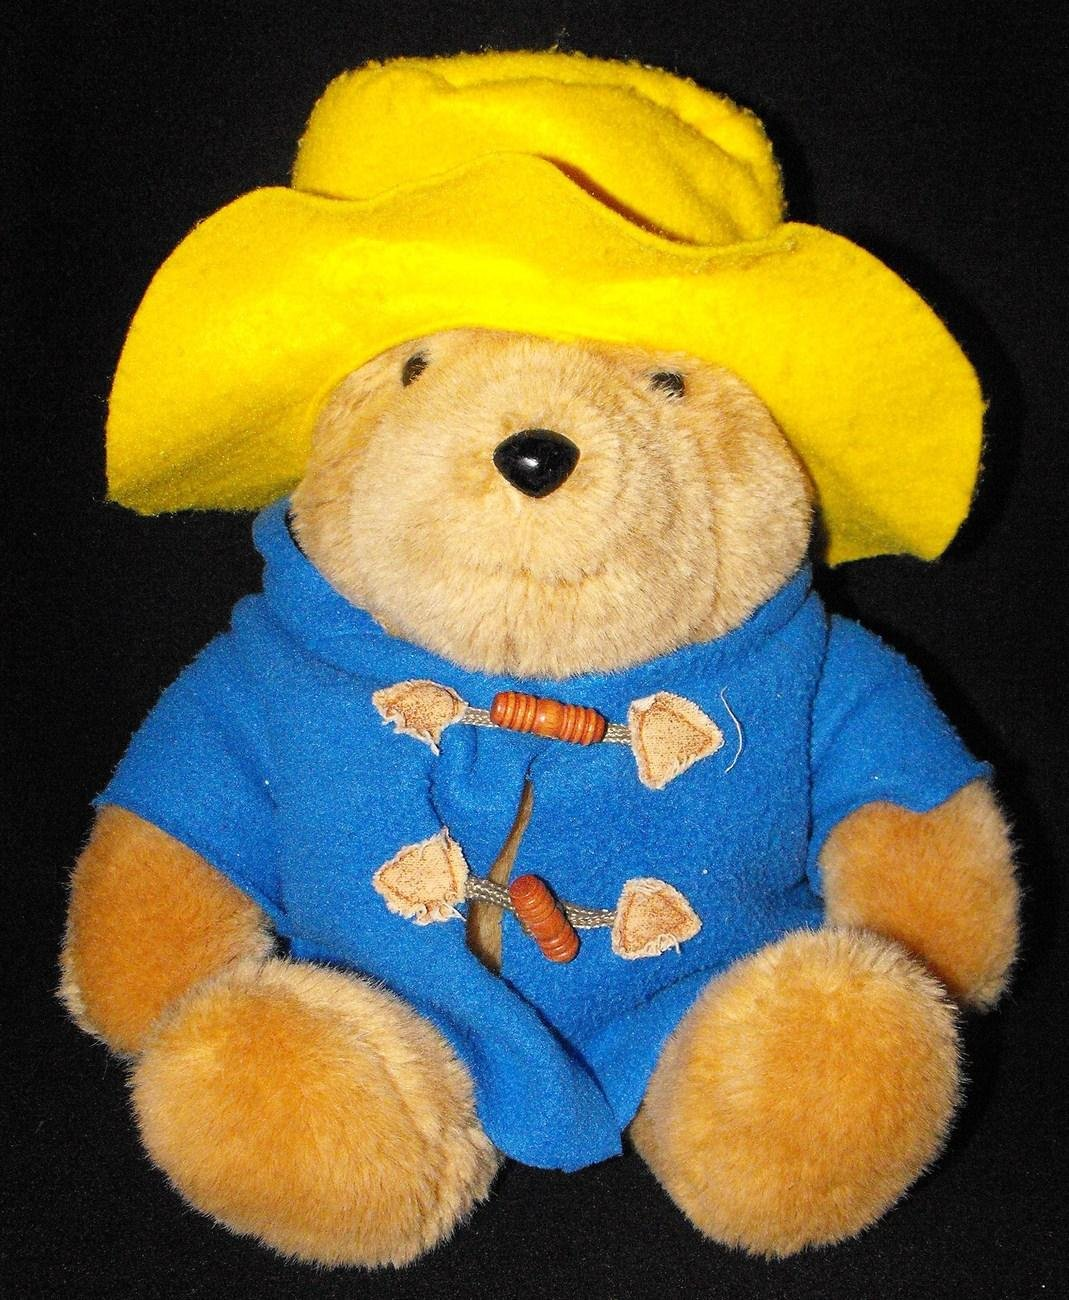 *SOLD~Awaiting Feedback~EDEN TOYS PADDINGTON BEAR COLLECTIBLE 1988